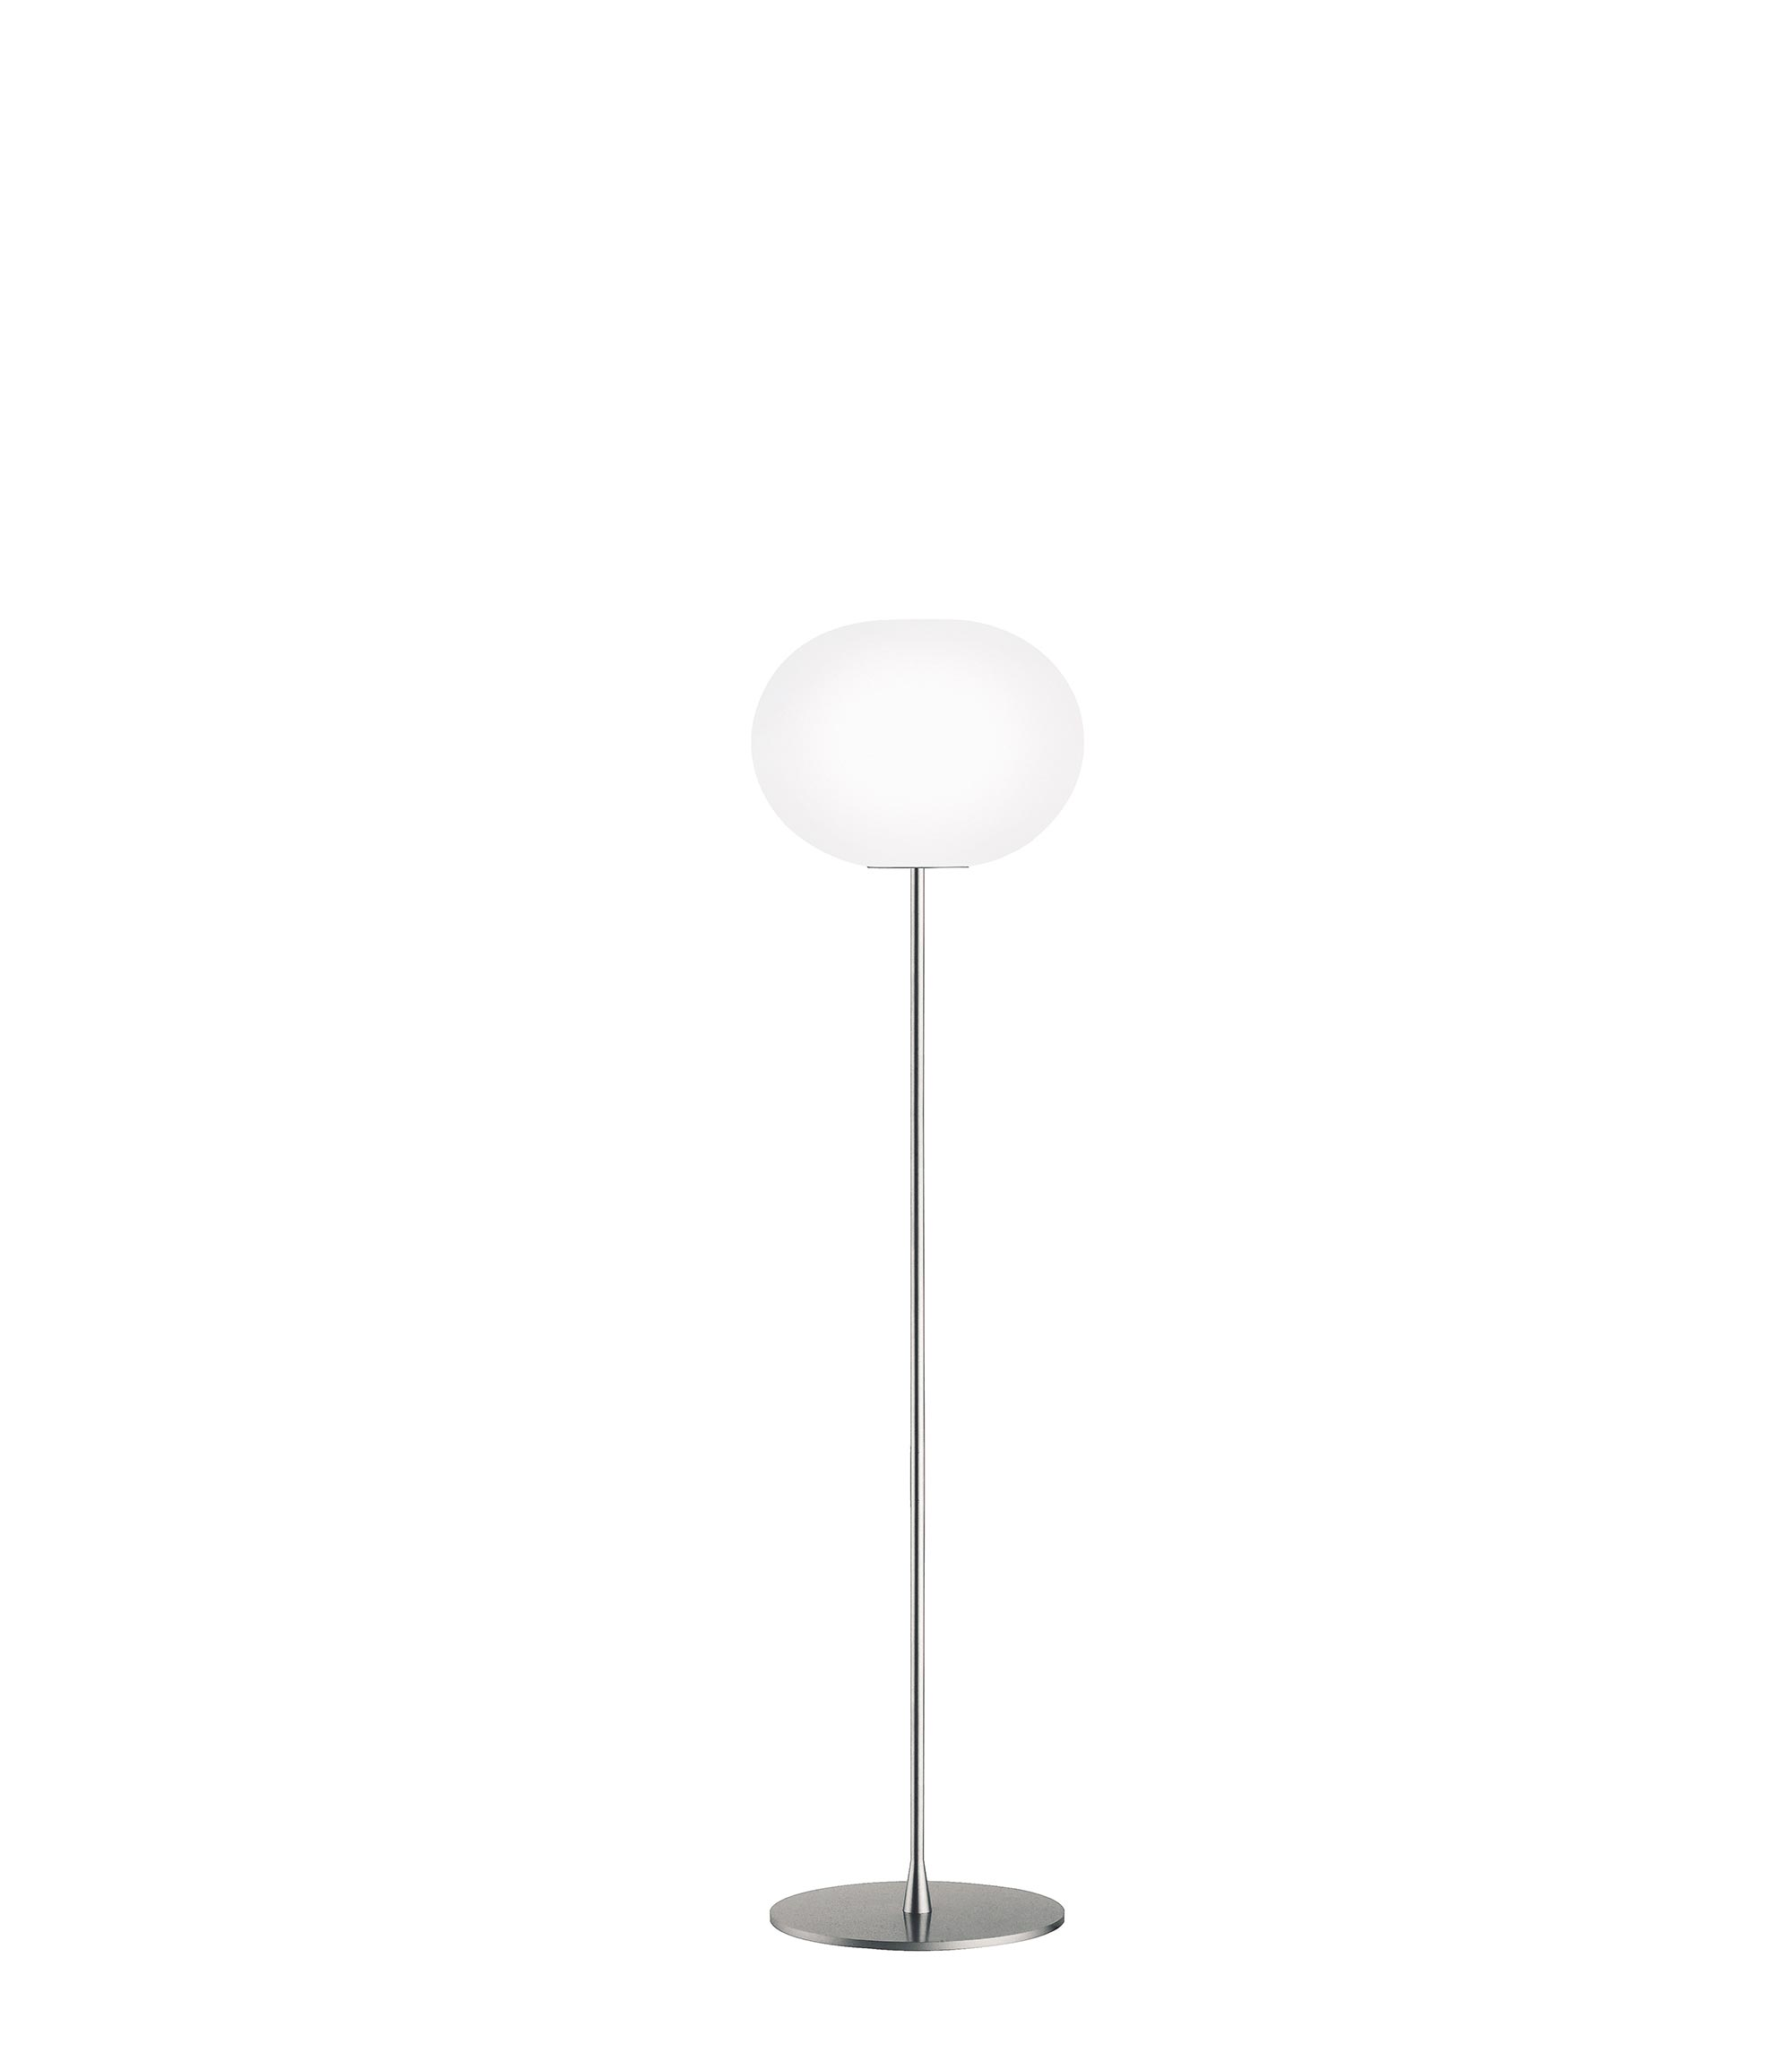 Glo ball floor 2 morrison flos F3030000 product still life big